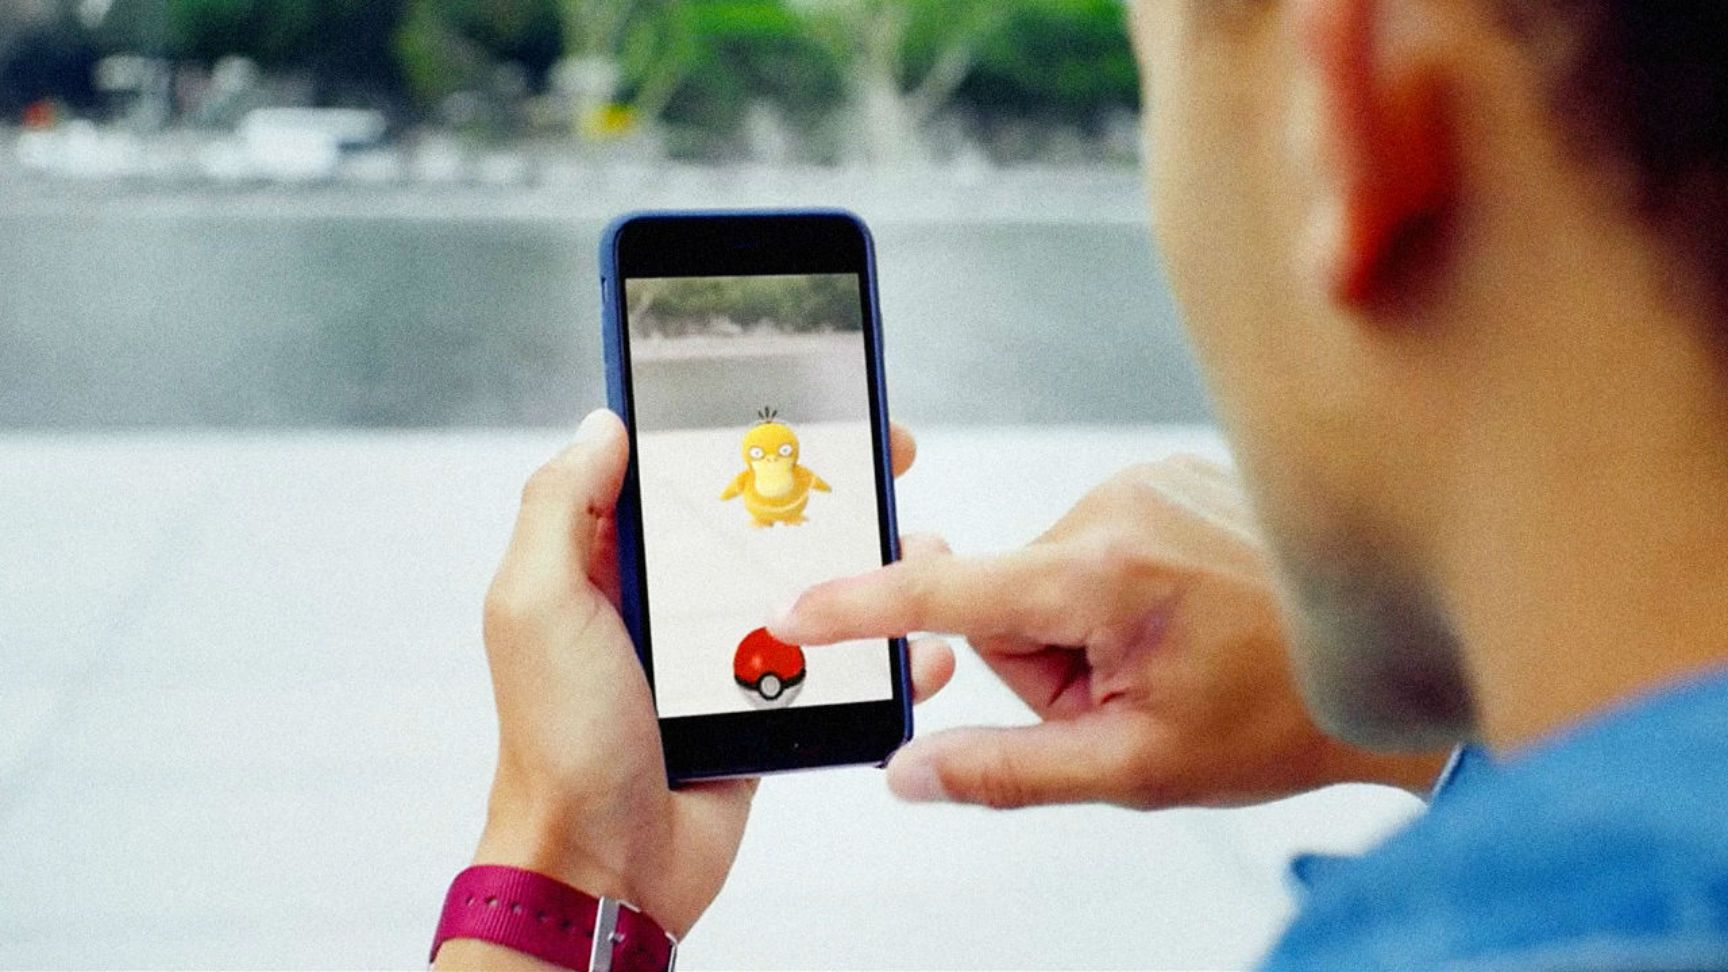 20 Pokémon Go Tricks That Will Help You Catch 'Em All